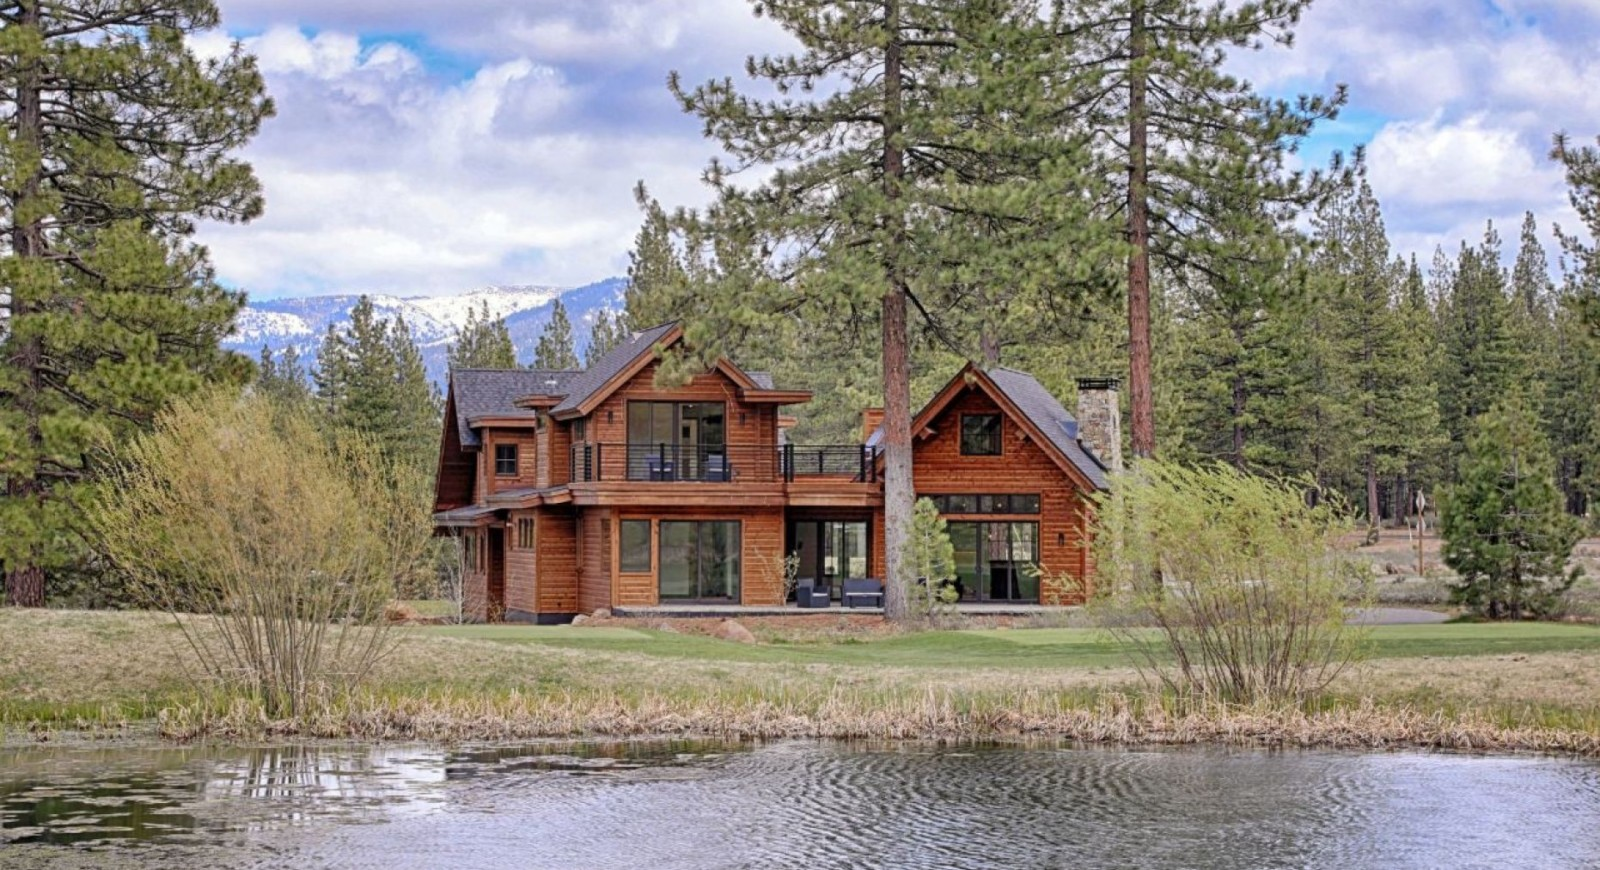 Lake Tahoe real estate: Here's what a few million dollars can get you 3